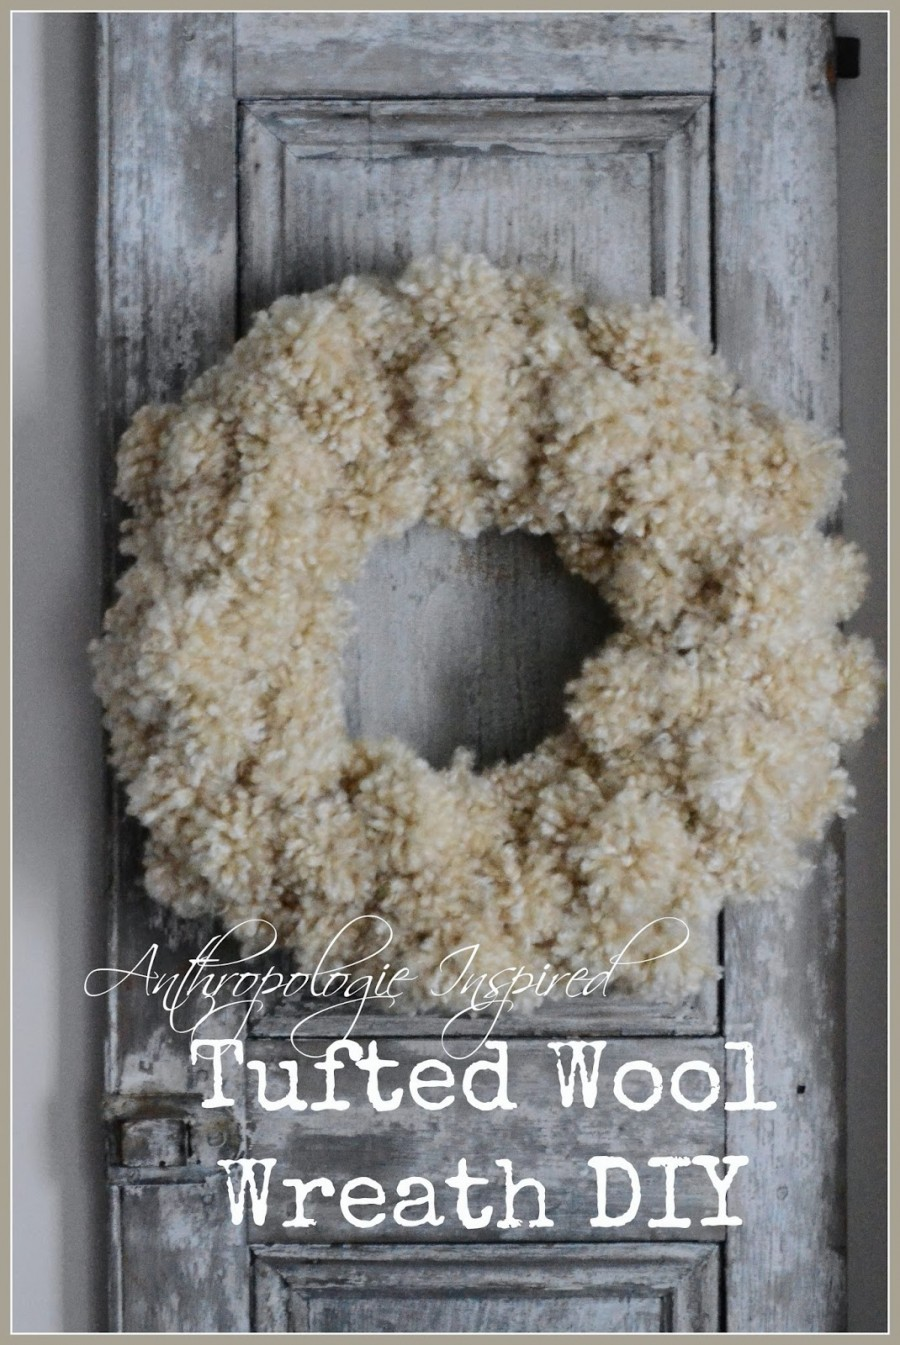 http://www.stonegableblog.com/anthropologie-inspired-tufted-wool/